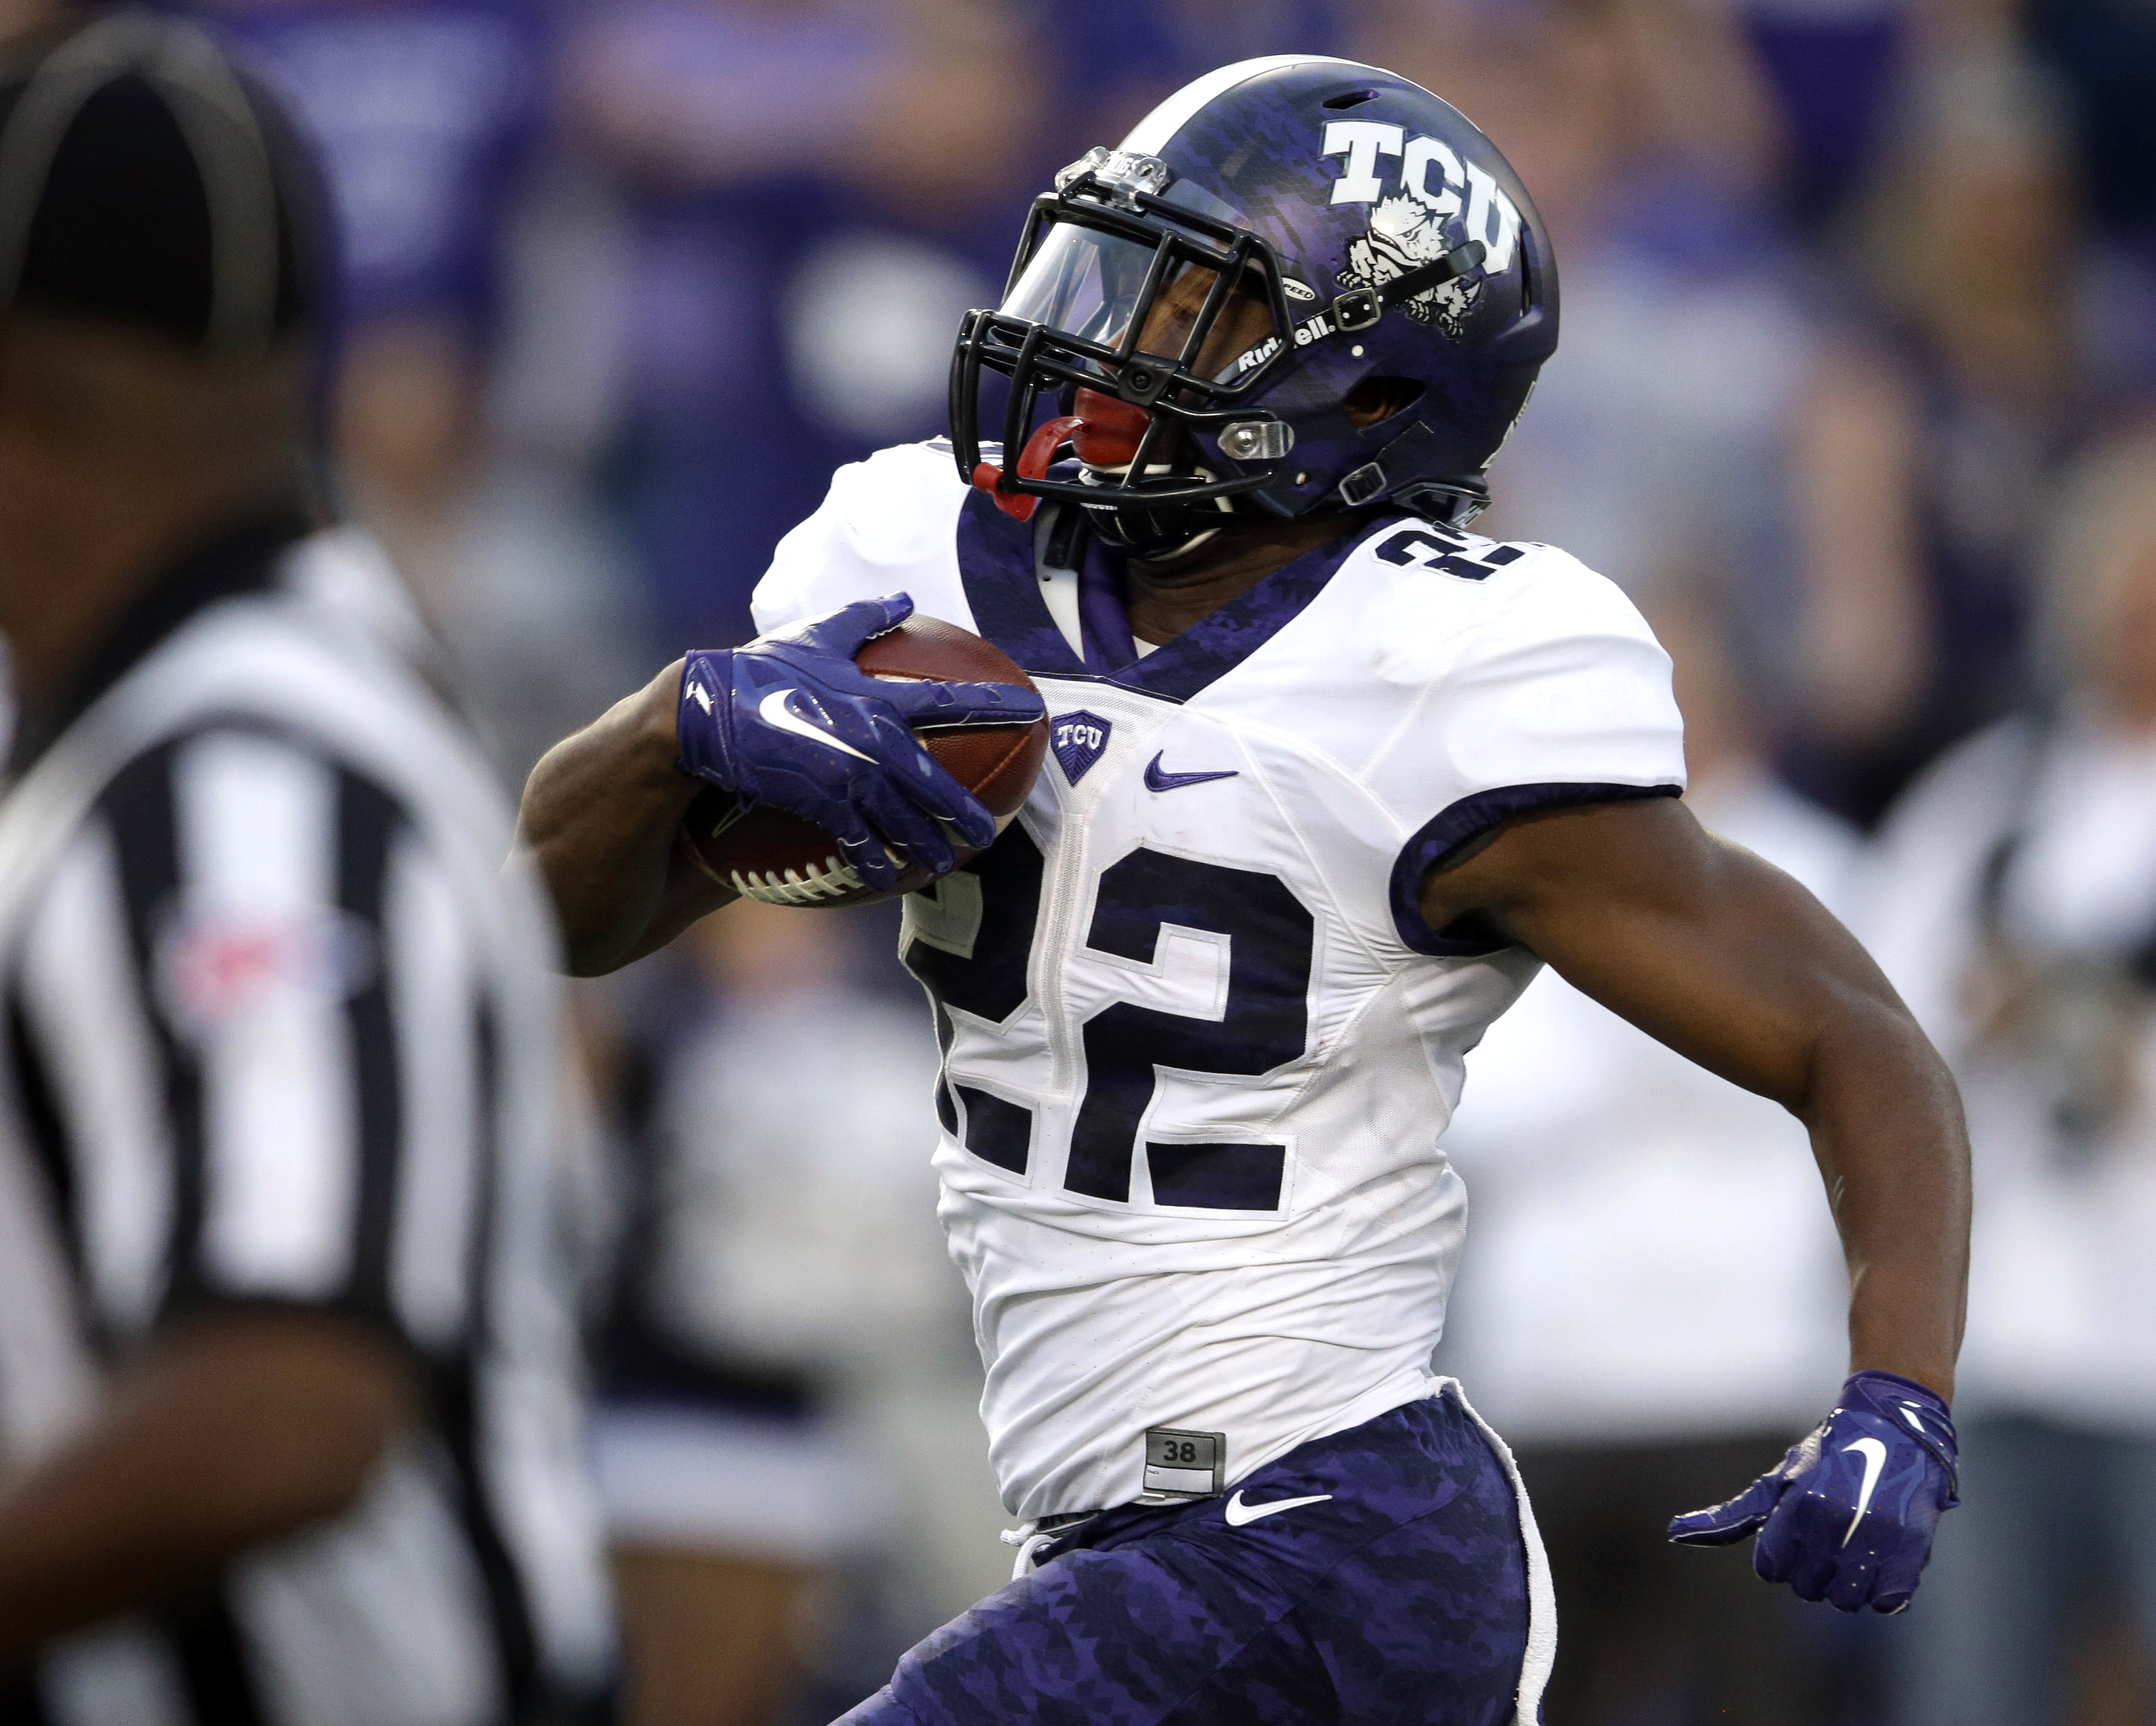 TCU running back Aaron Green (22) runs for a touchdown during the first half of an NCAA college football game against Kansas State in Manhattan, Kan., Saturday, Oct. 10, 2015. (AP Photo/Orlin Wagner)